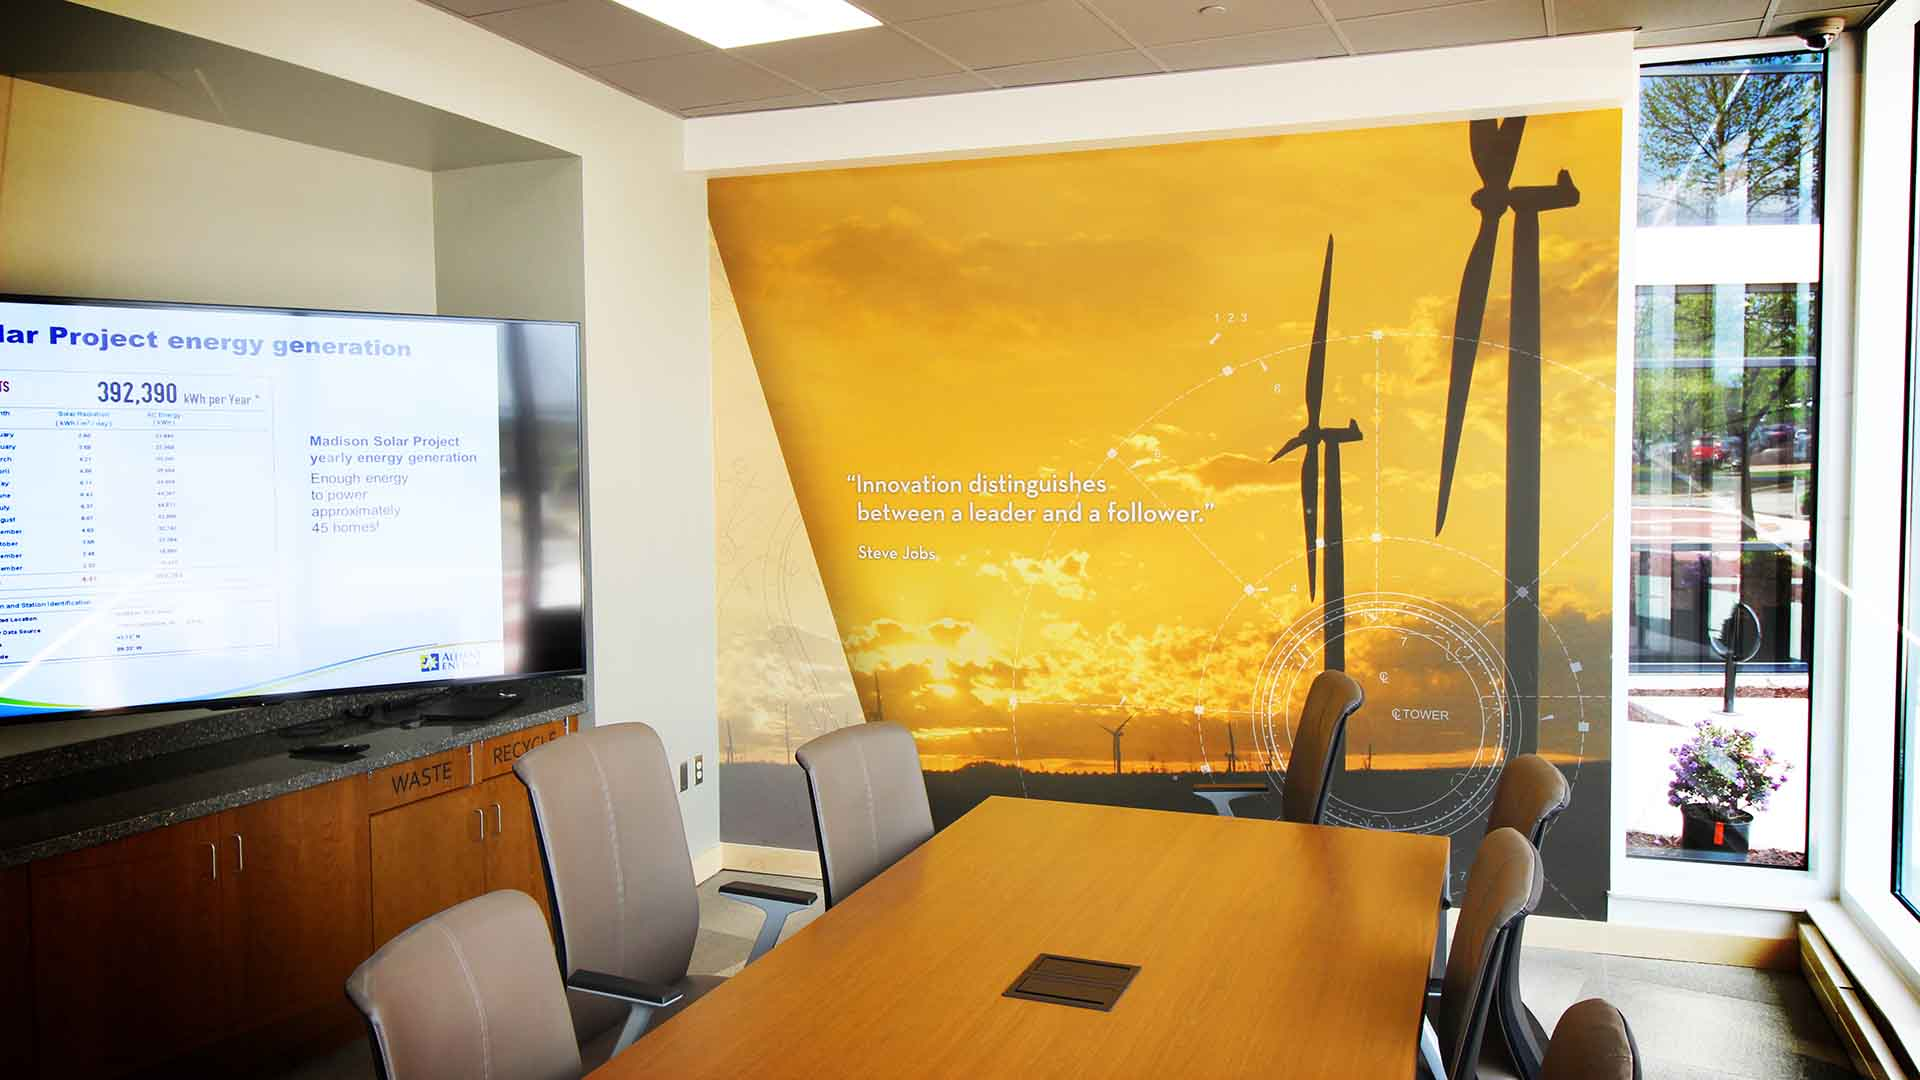 Conference Room with wall mural graphic of wind turbines and quote